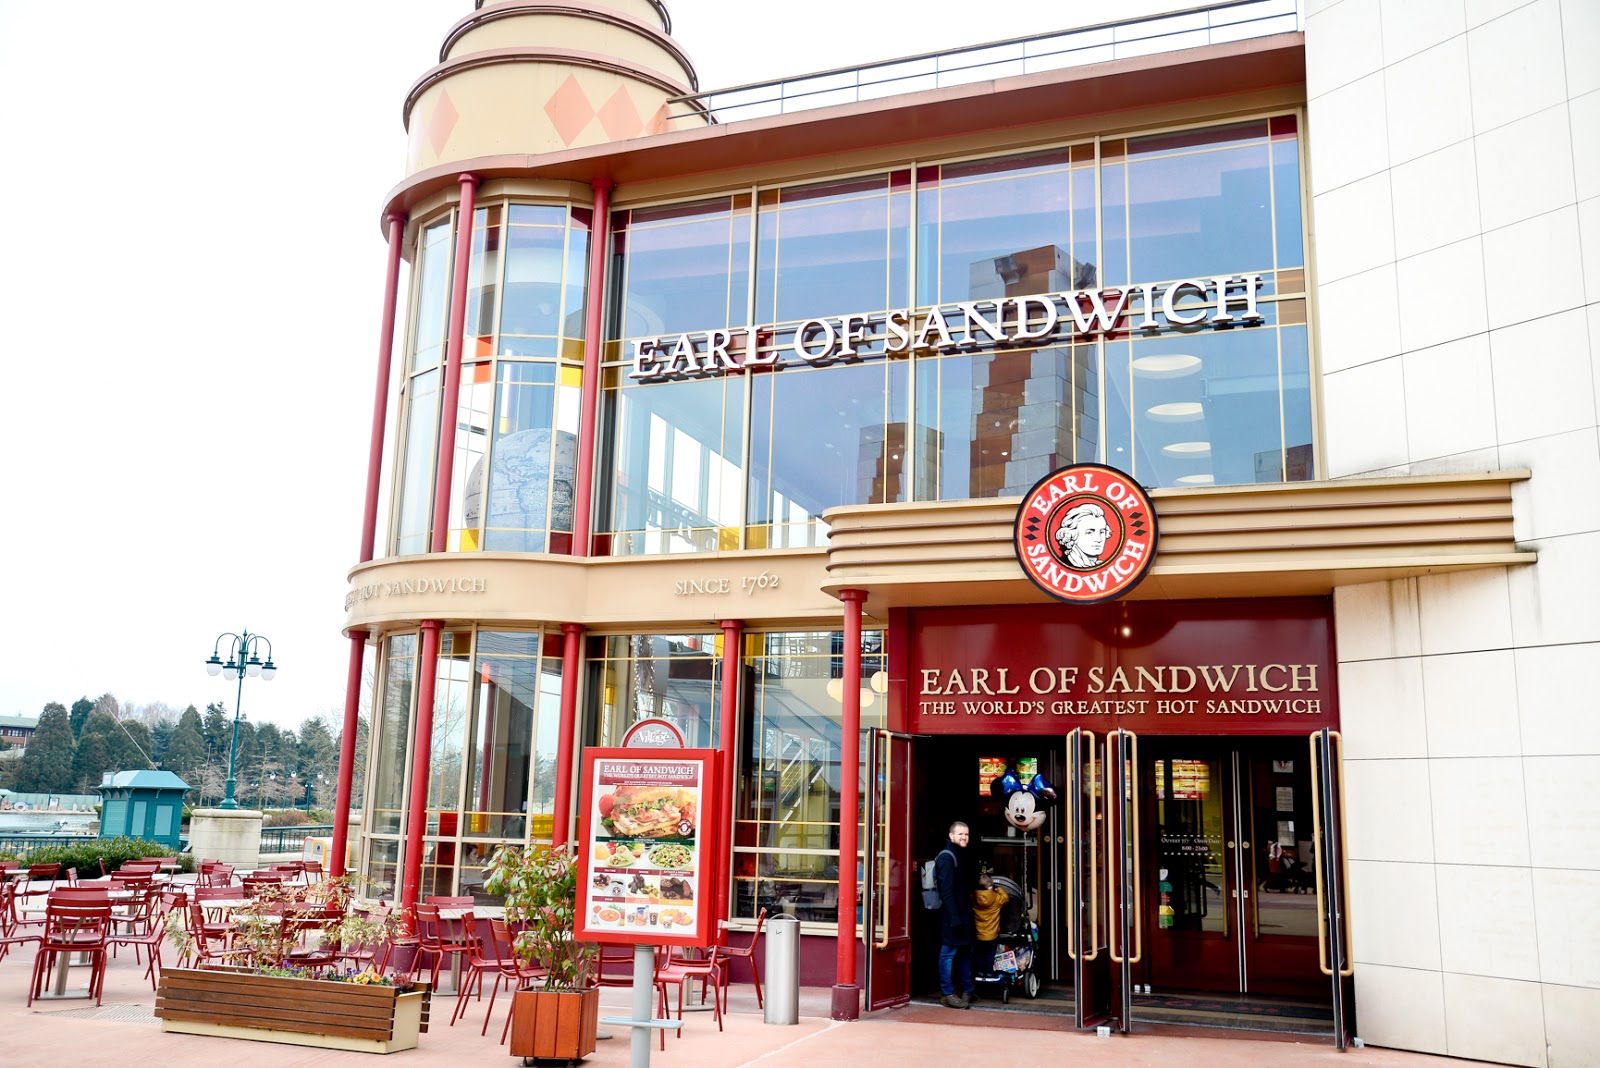 earl of sandwich disneyland paris, where to eat as a vegetarian disneyland paris, vegetarian in disneyland paris,